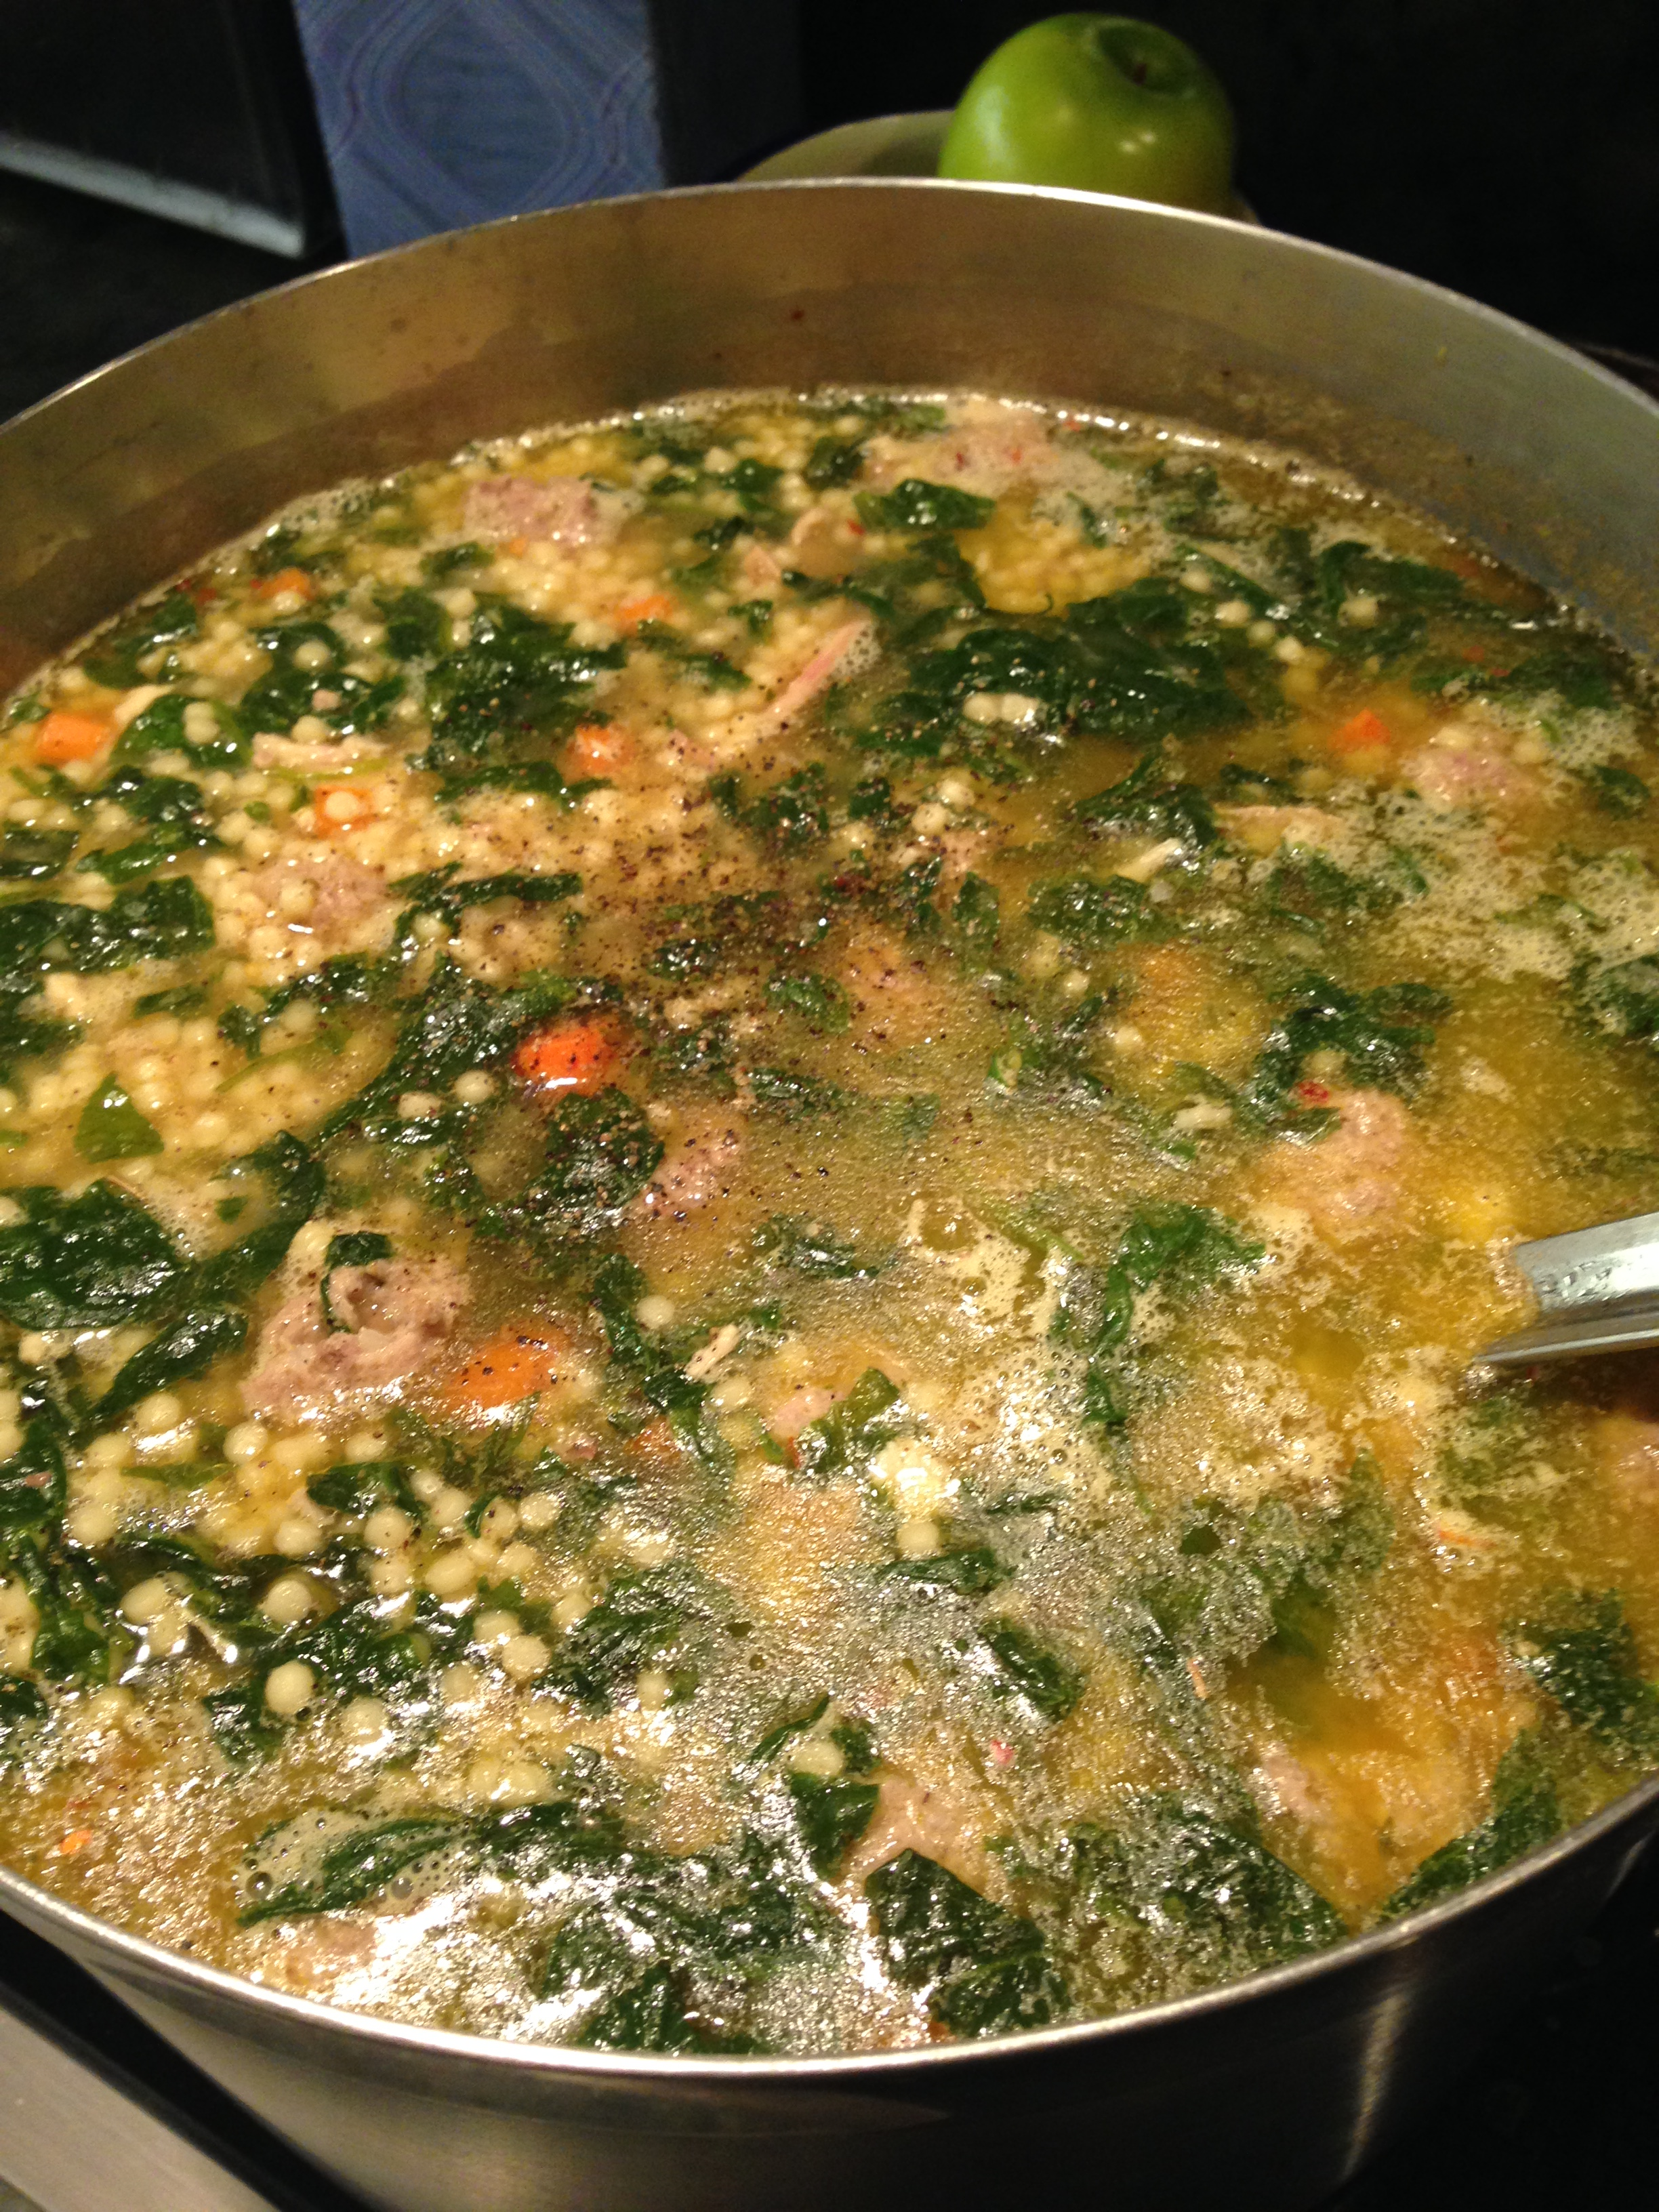 Chris' Italian Wedding Soup